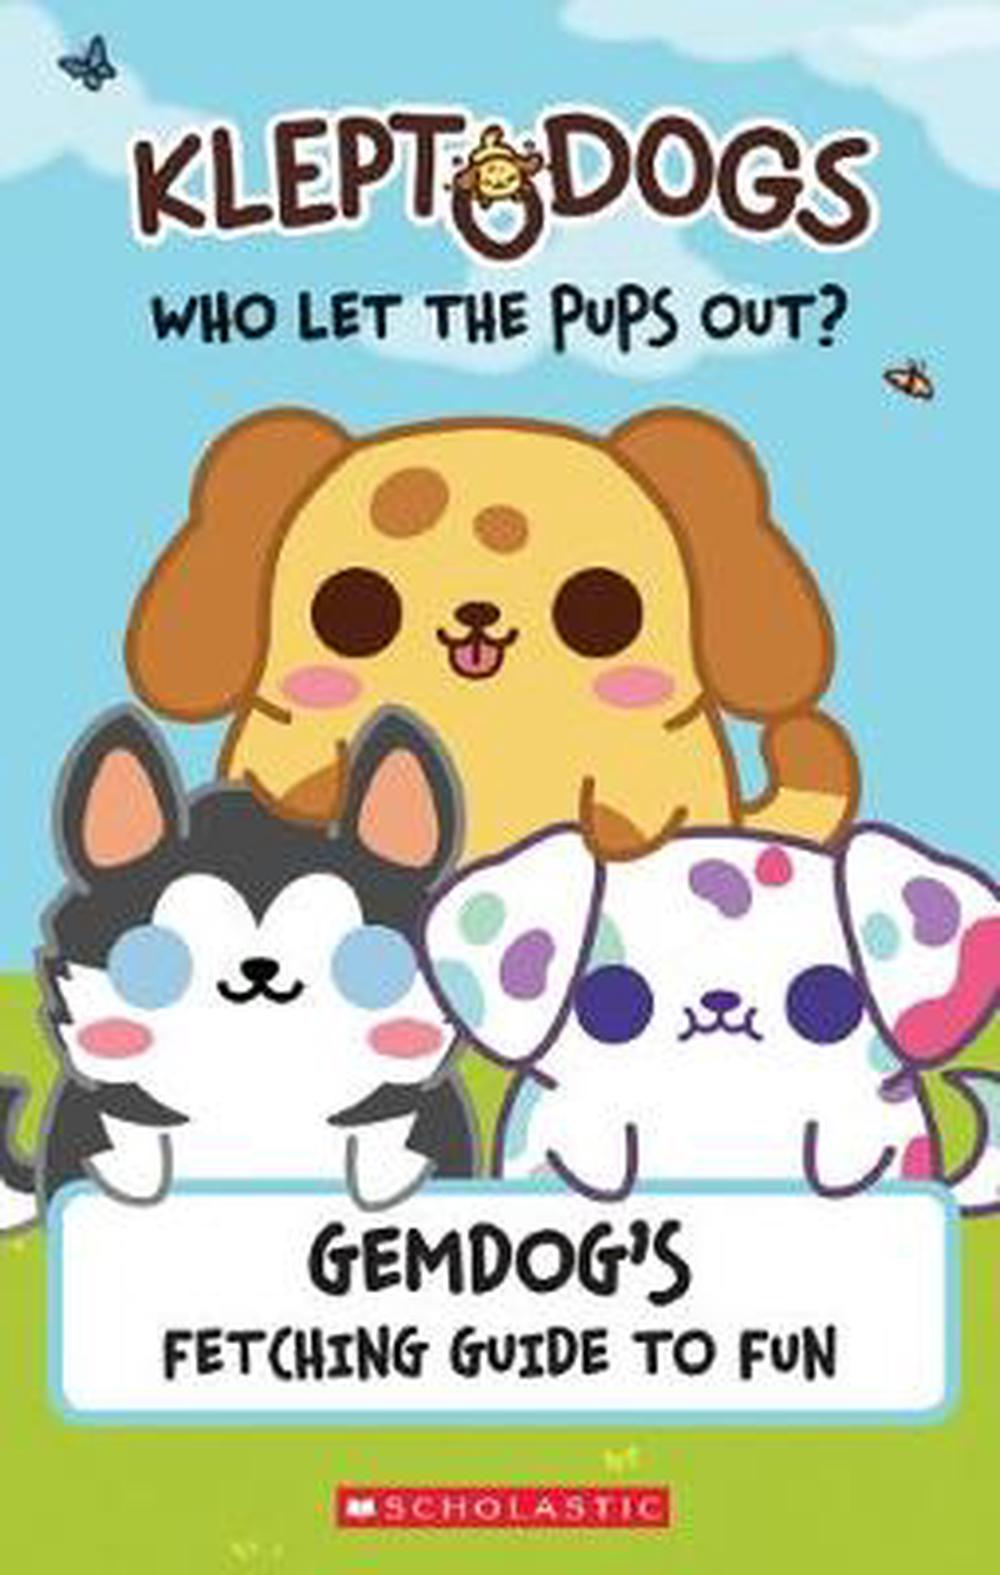 Kleptodogs: It's Their Turn Now! (Guidebook): Gemdog's Fetching Guide to Fun by Daphne Pendergrass, ISBN: 9781338556049